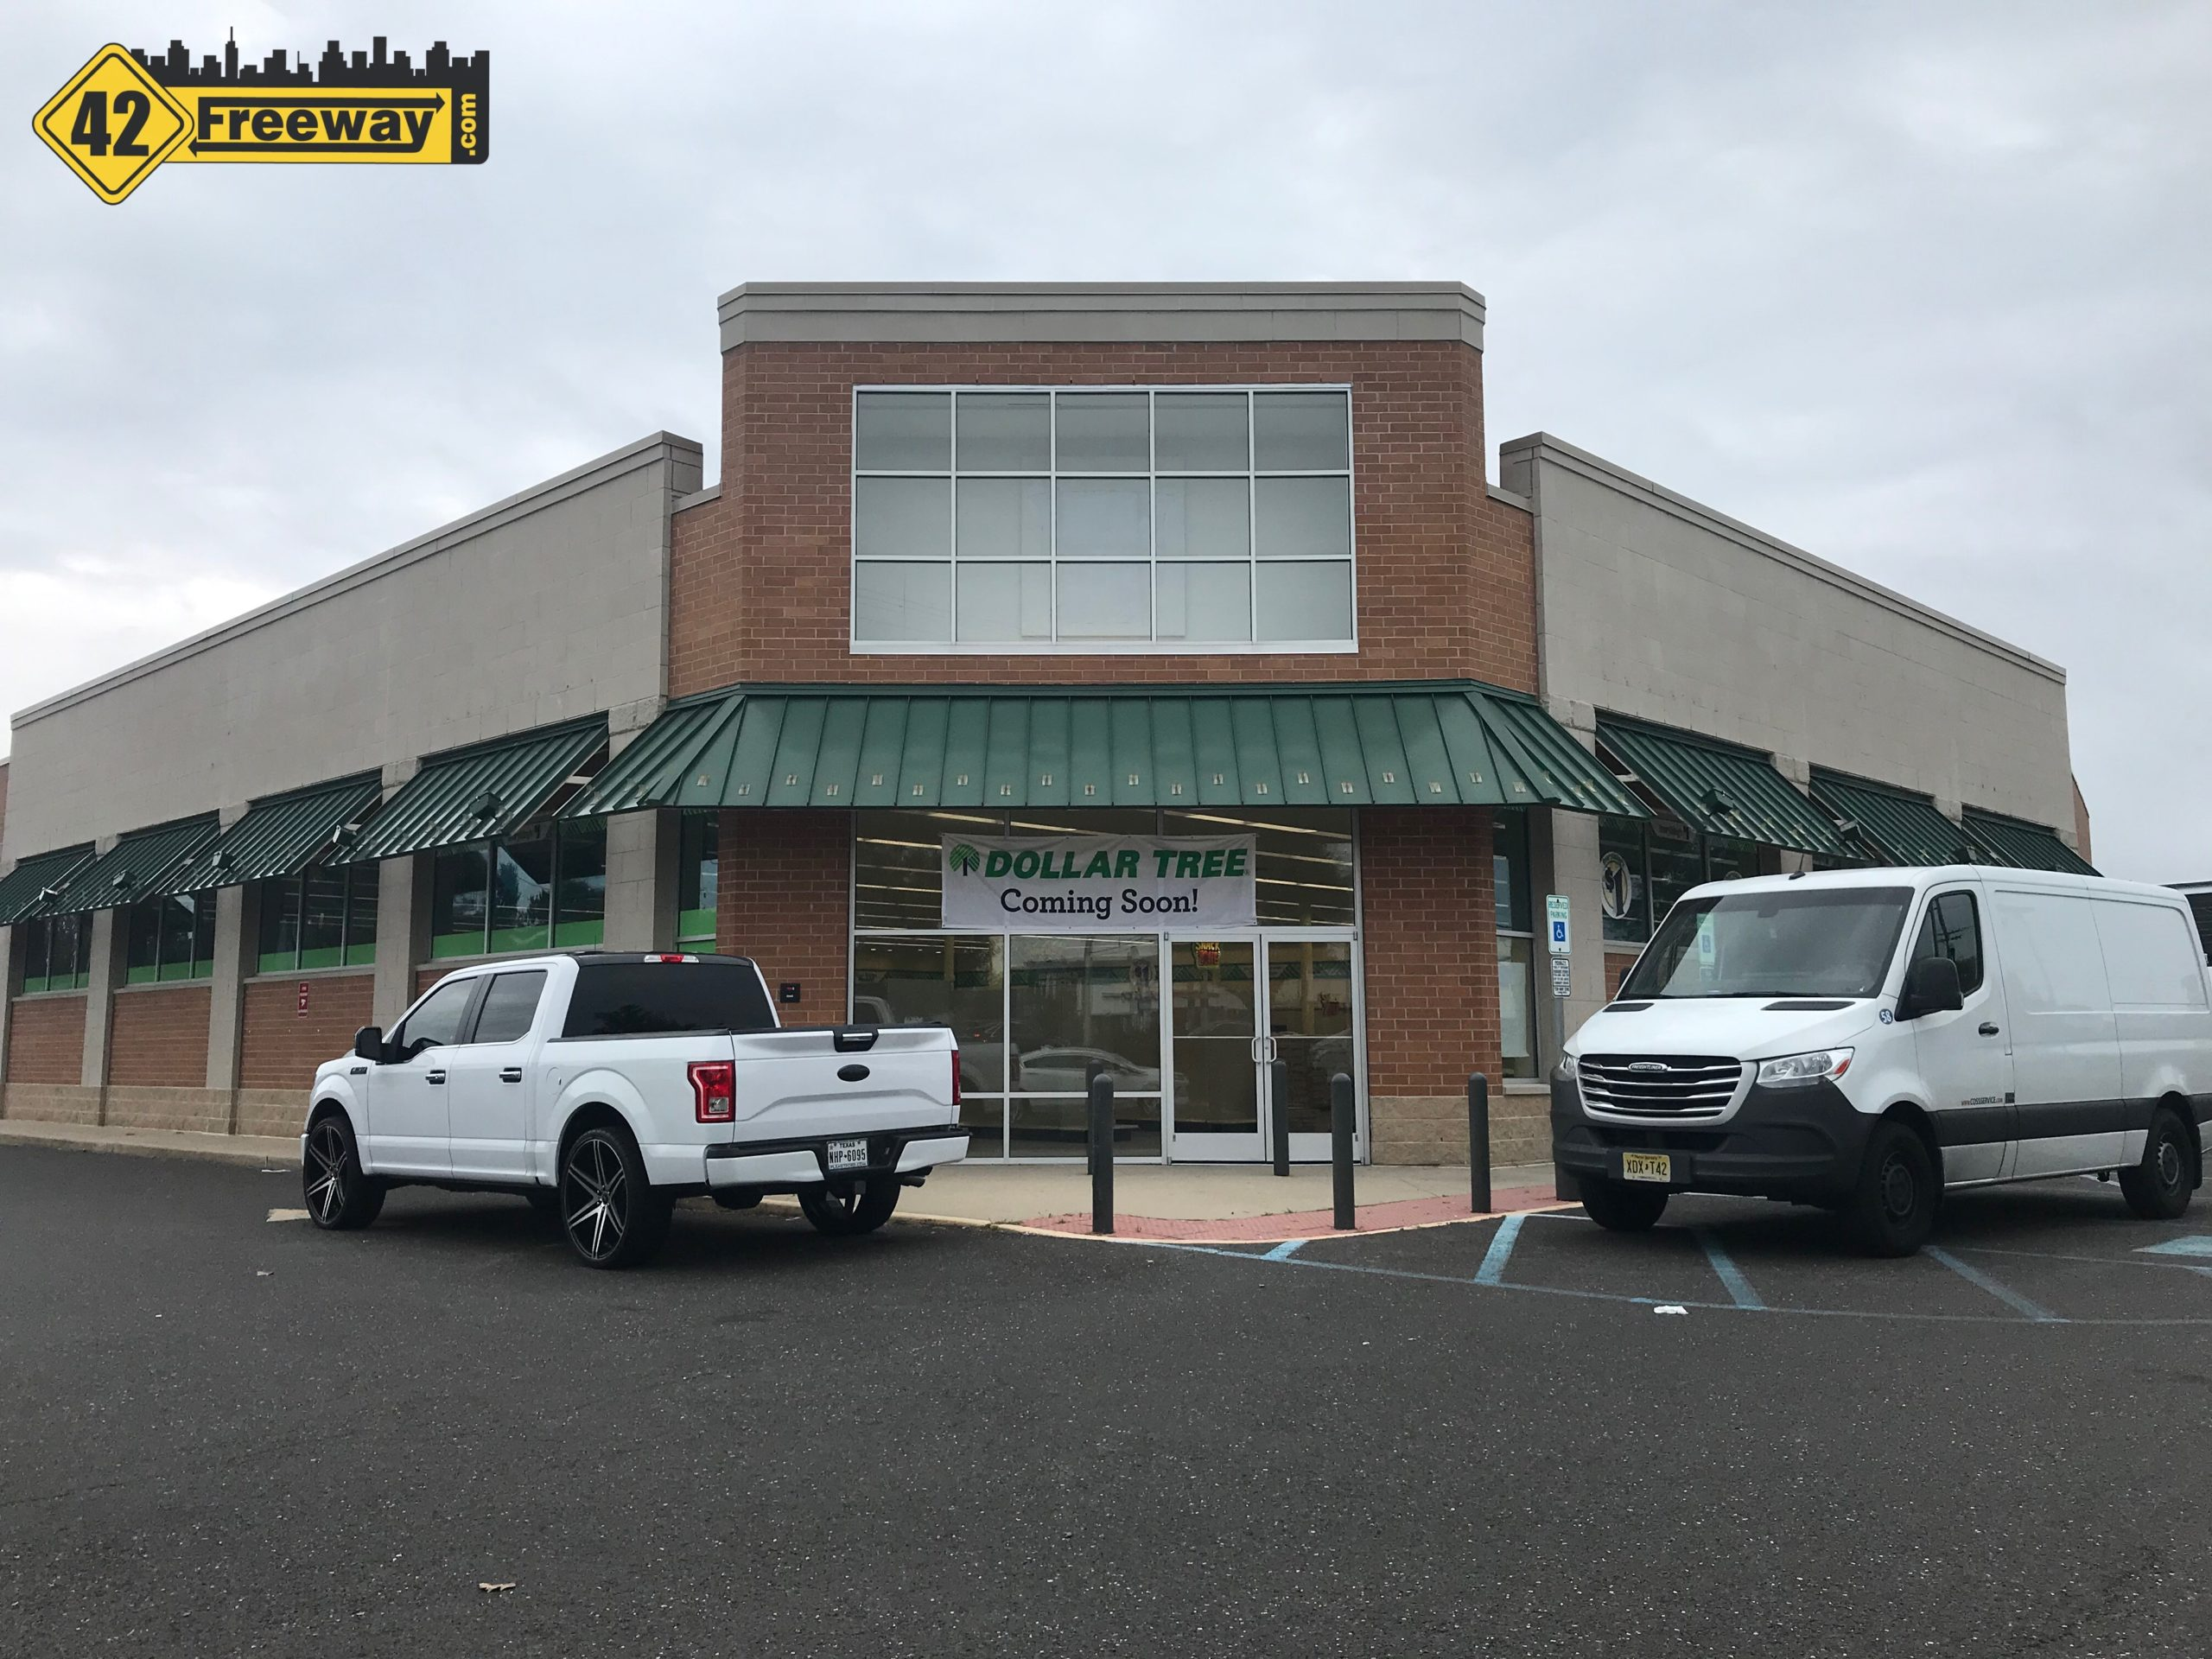 Dollar Tree Moving Into Former Walgreen's at Lindenwold's Patco Station.  Relocating From Somerdale WHP Location